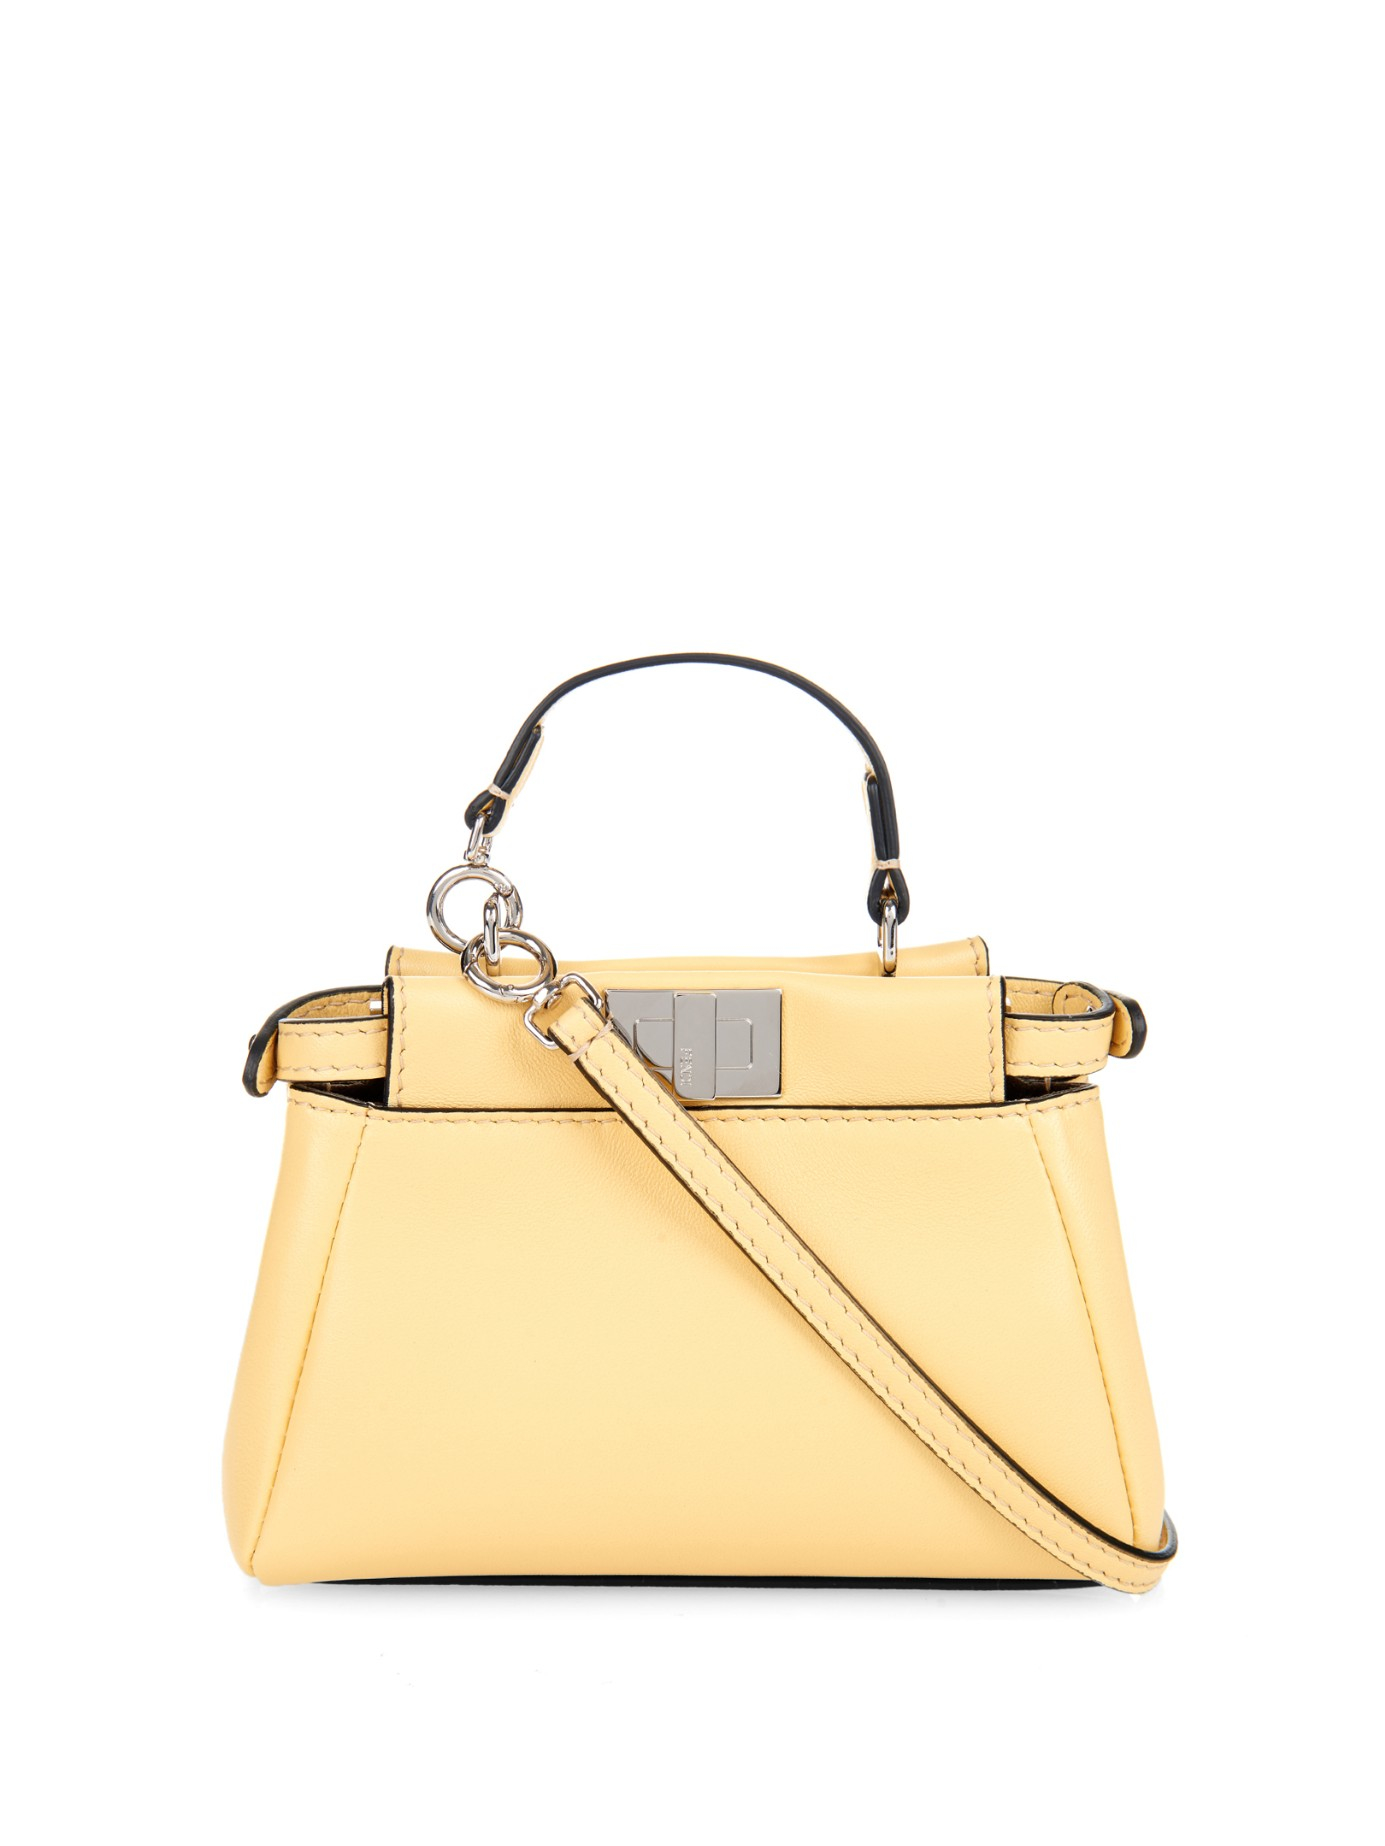 Fendi Micro Peekaboo Leather Cross-Body Bag in Yellow - Lyst efed73ba8c6d2